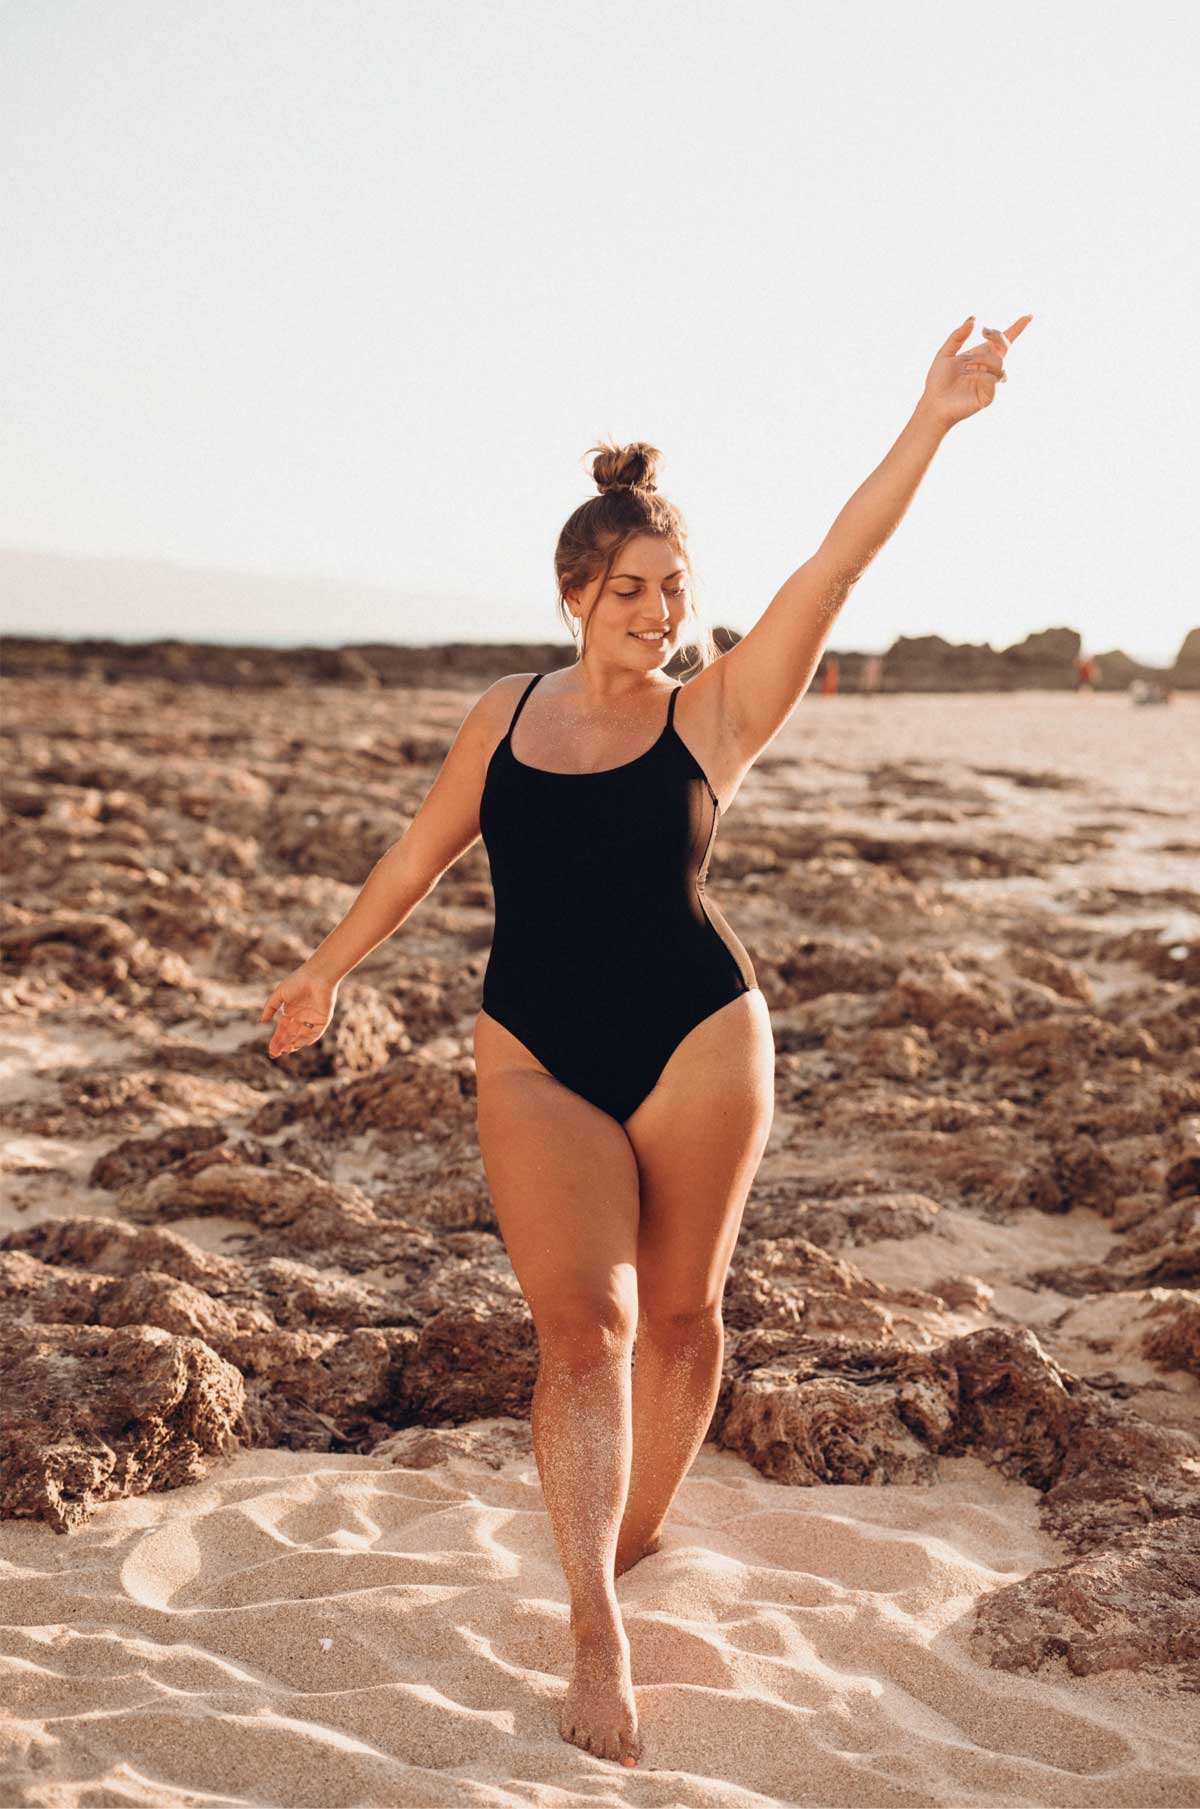 A plus size woman in a black bathing suit on the beach for the post 'how to be fat'.